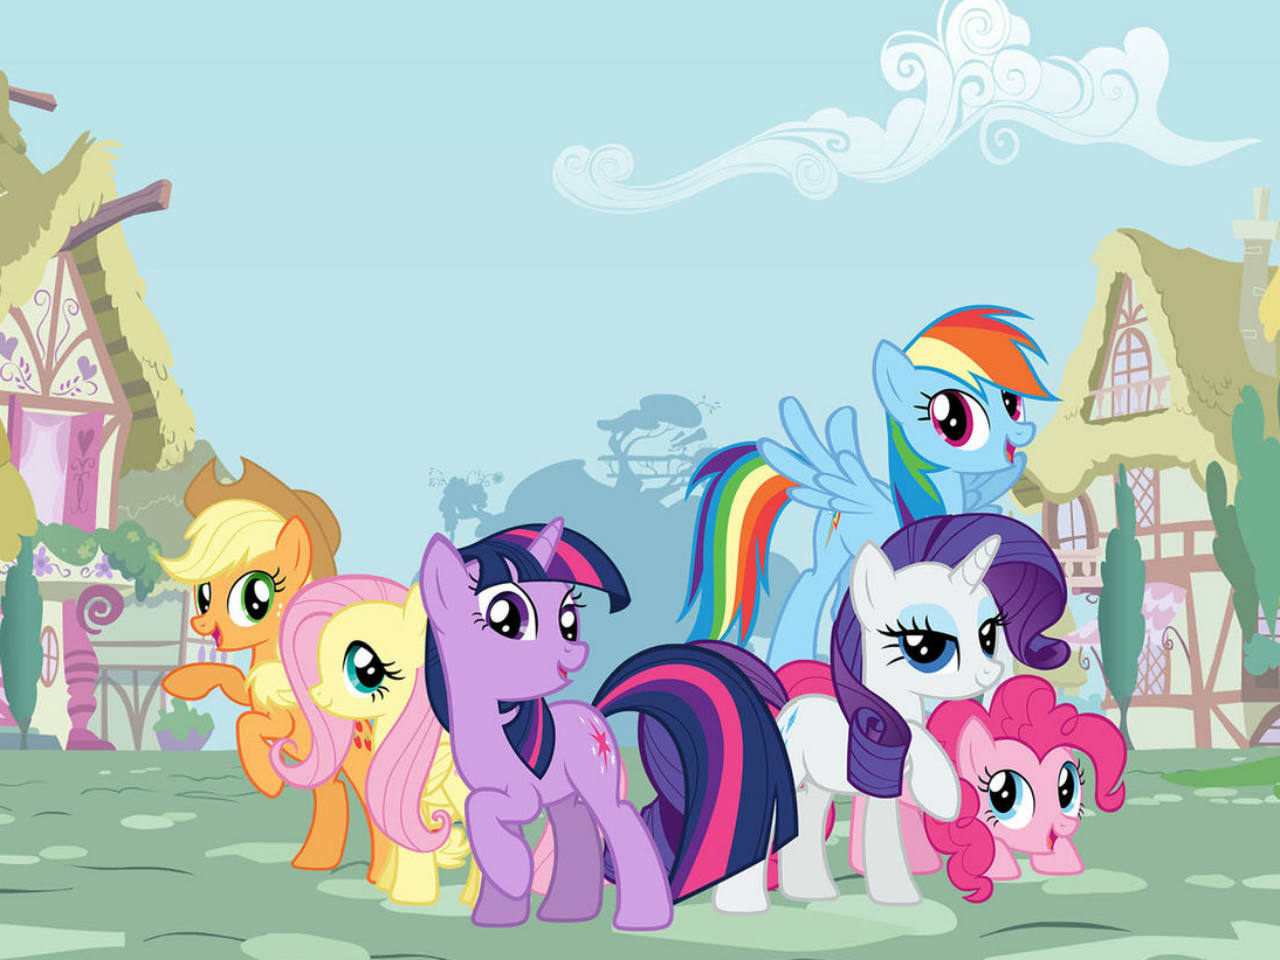 A film screen grab of the My Little Ponies